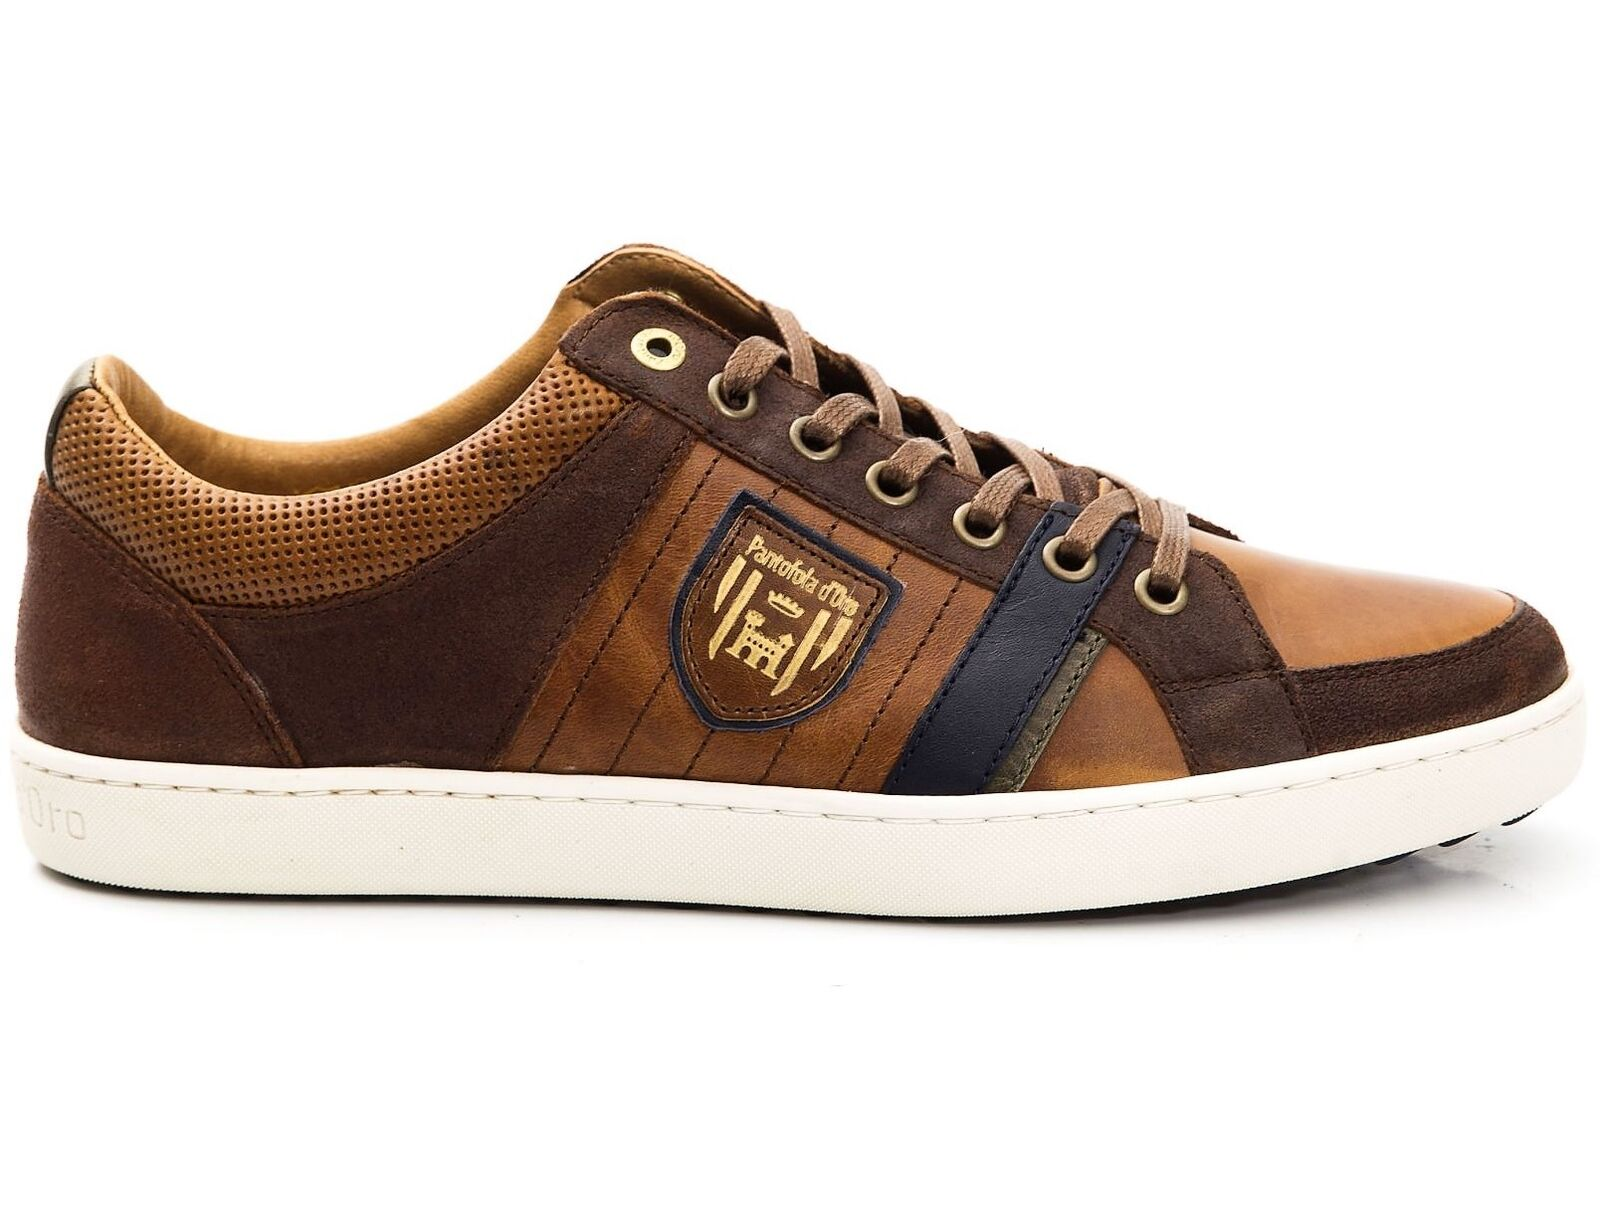 Leather Sneakers shoes Man Pantofola d'gold shoes Men Tarente Low brown 1018302